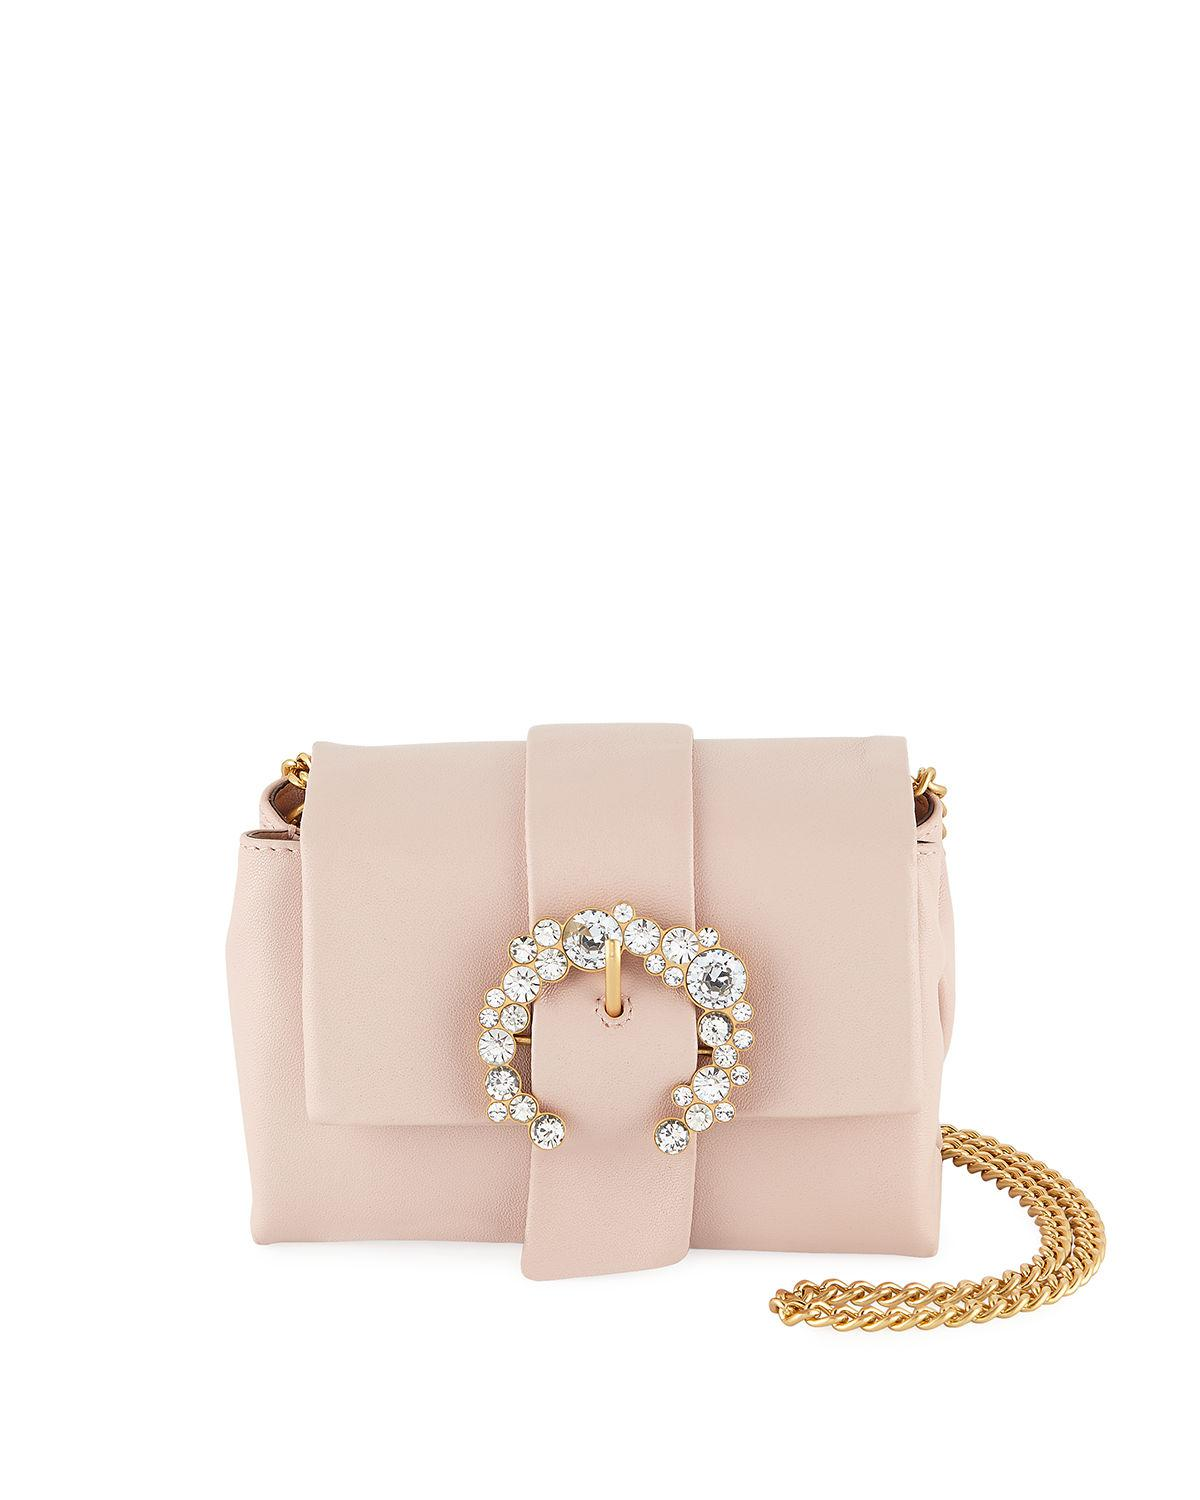 0e0e2aa88fb Lyst - Tory Burch Greer Mini Leather Crossbody Bag in Pink - Save 42%